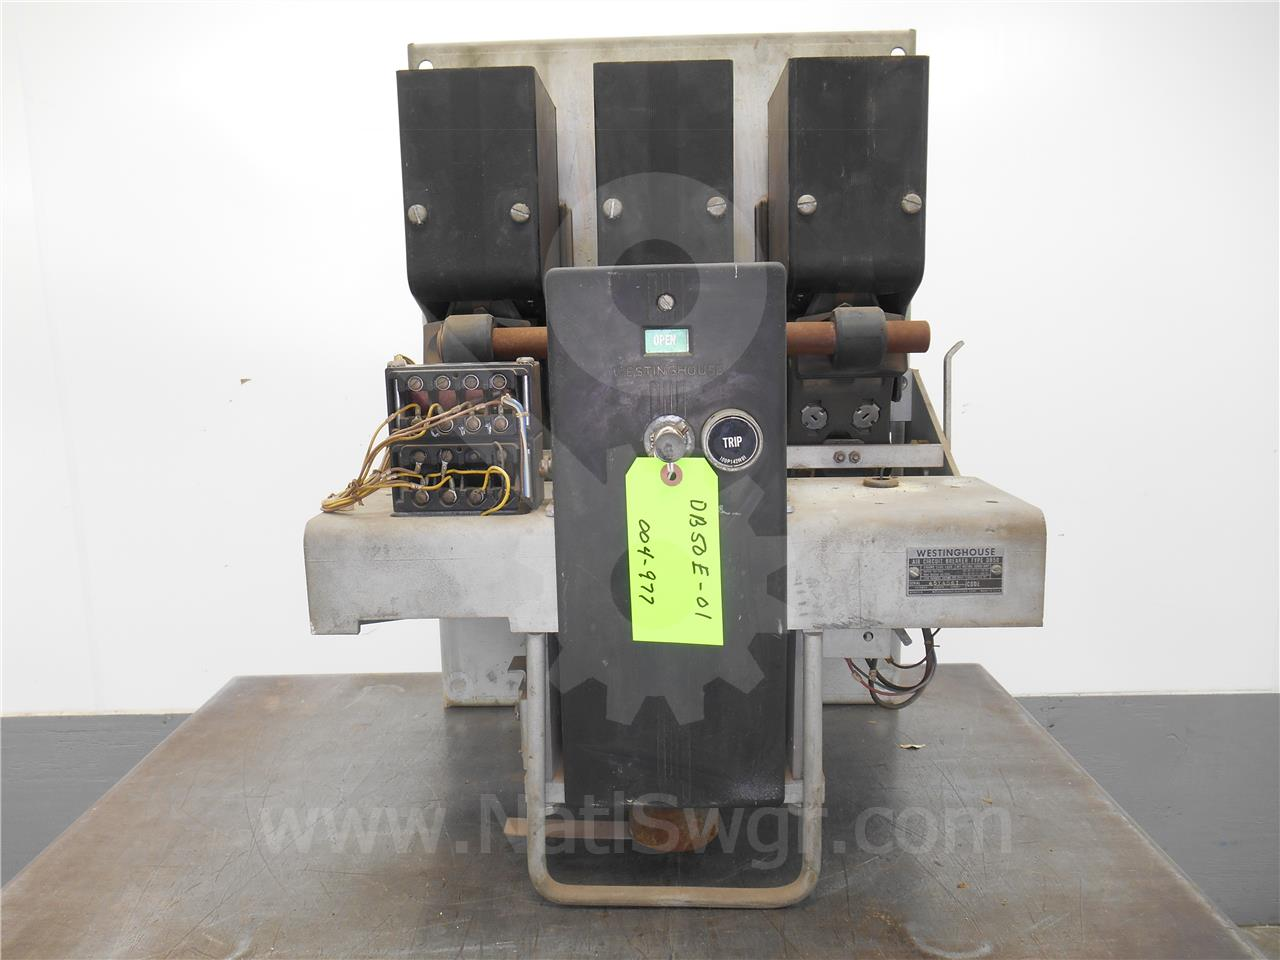 DB-50 1600A Westinghouse EO/DO 1P NELSON RACKING